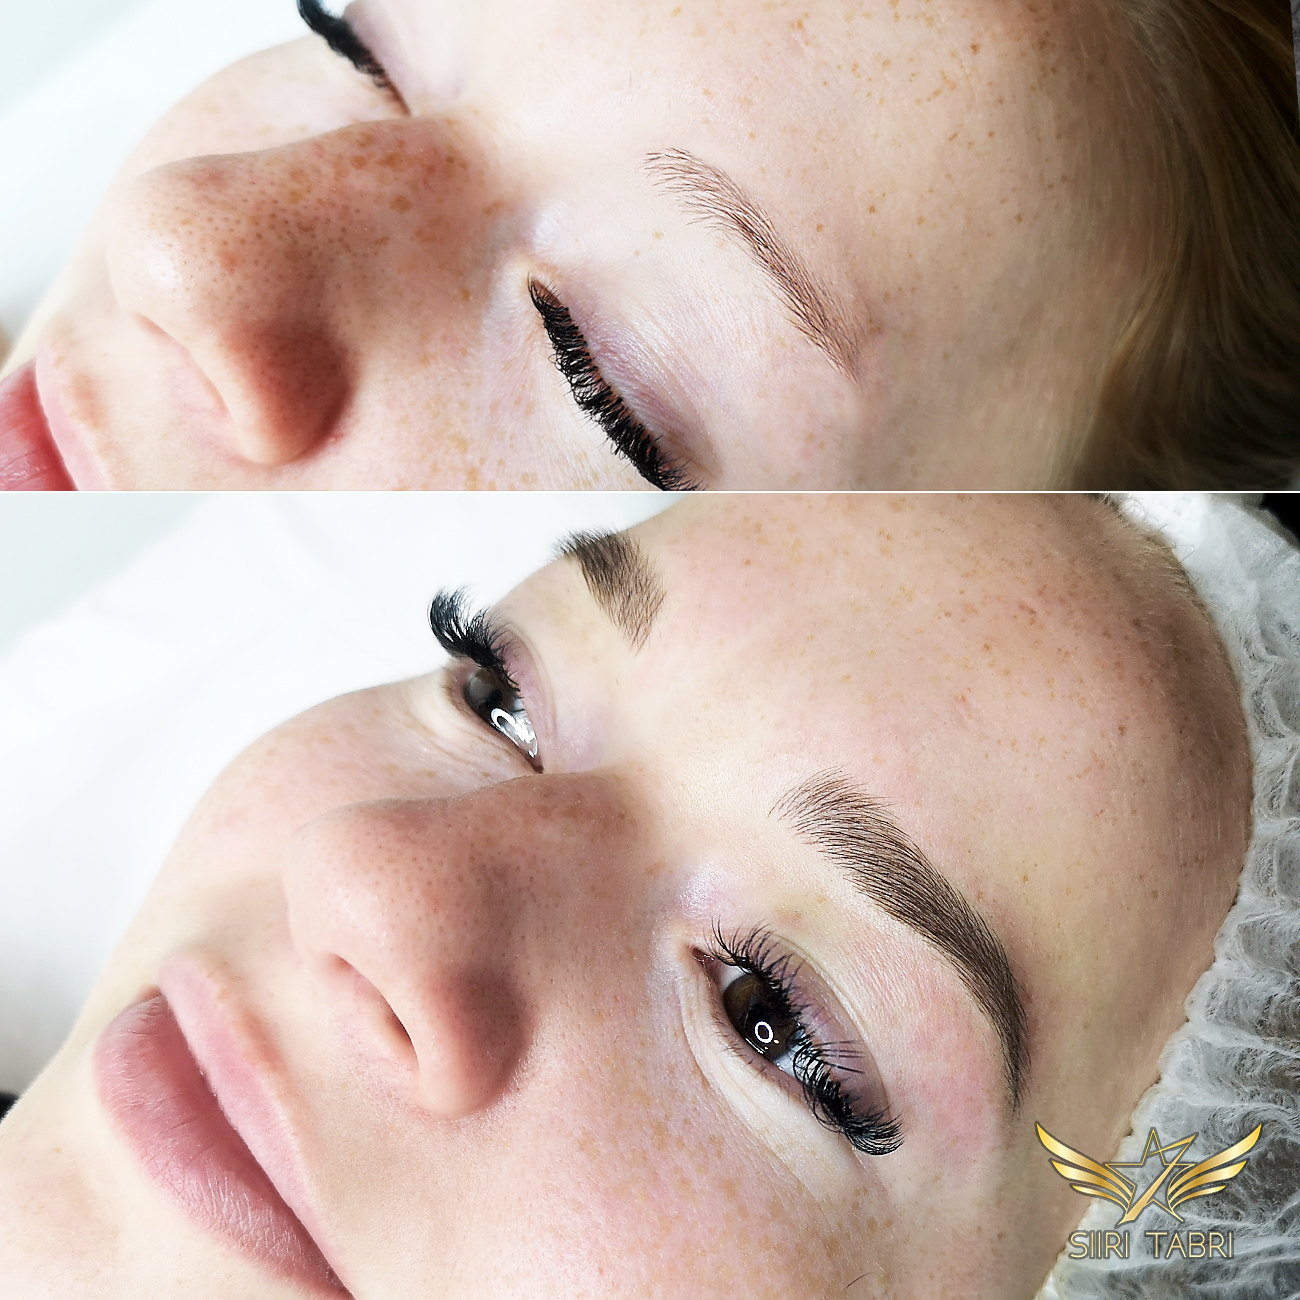 Light microblading. The end results of Light microblading technique are as natural as original brow hair.